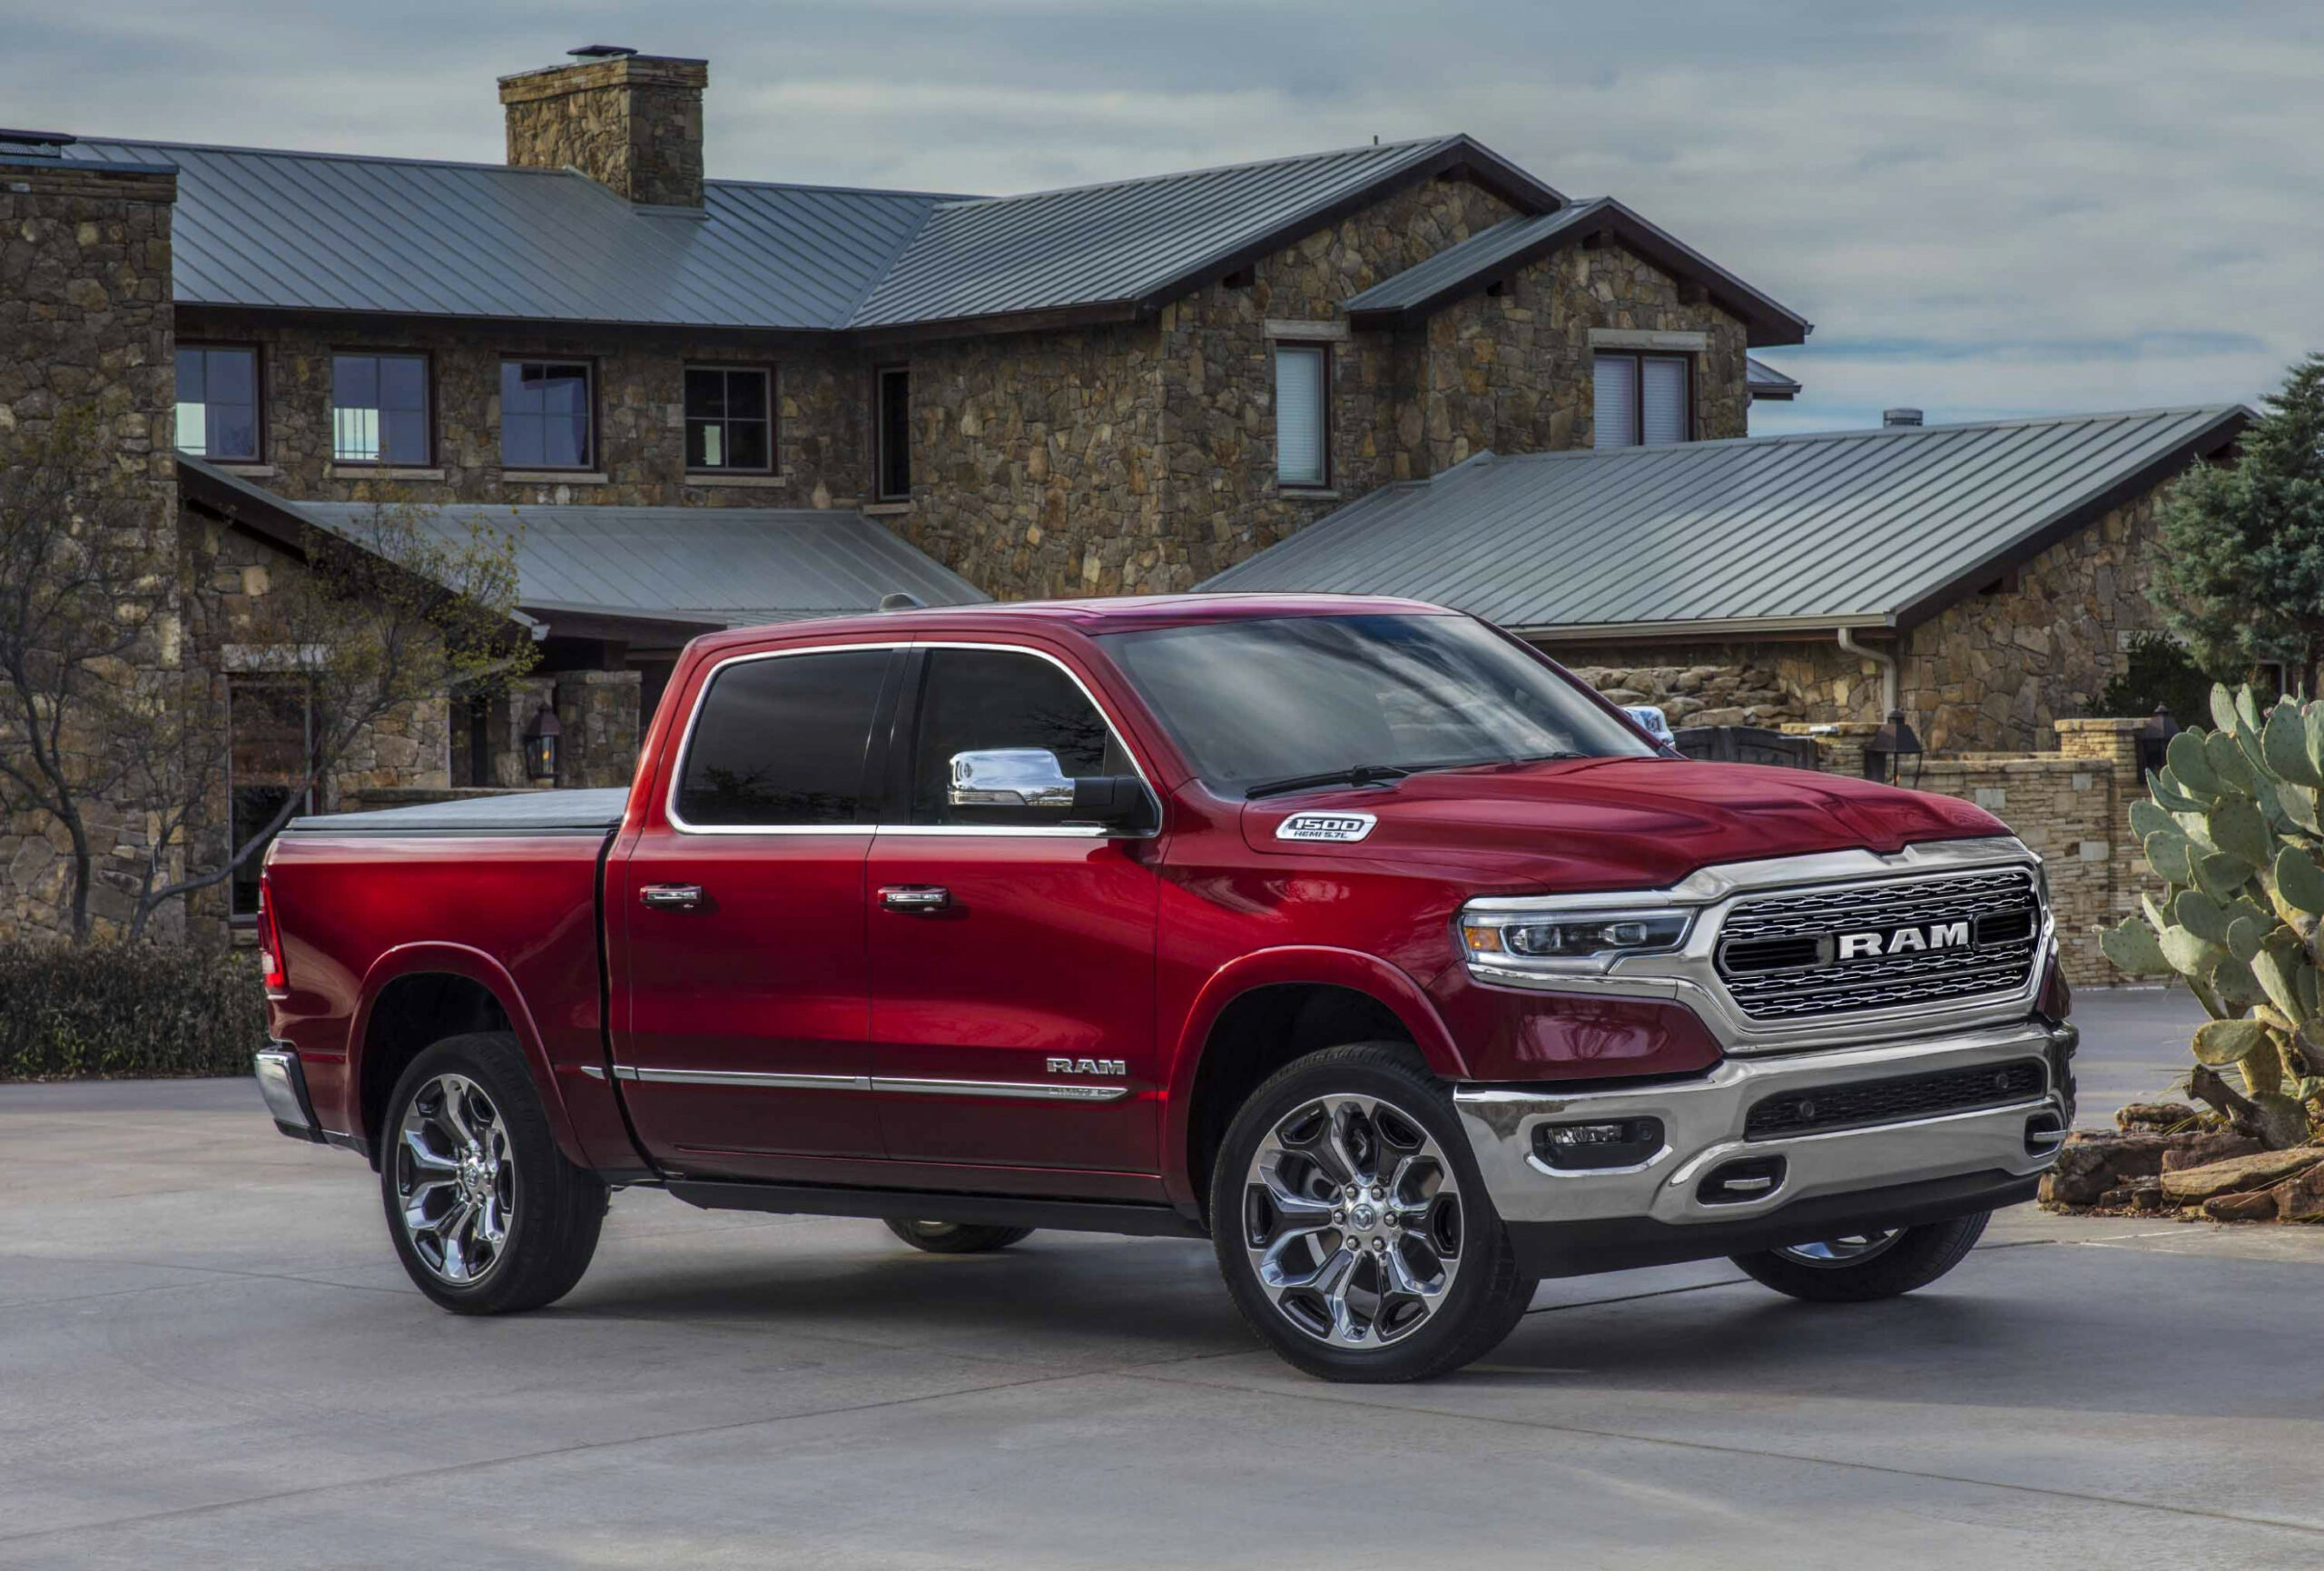 More than 8,8 Jeep, Ram, Chrysler, Dodge vehicles recalled for ..